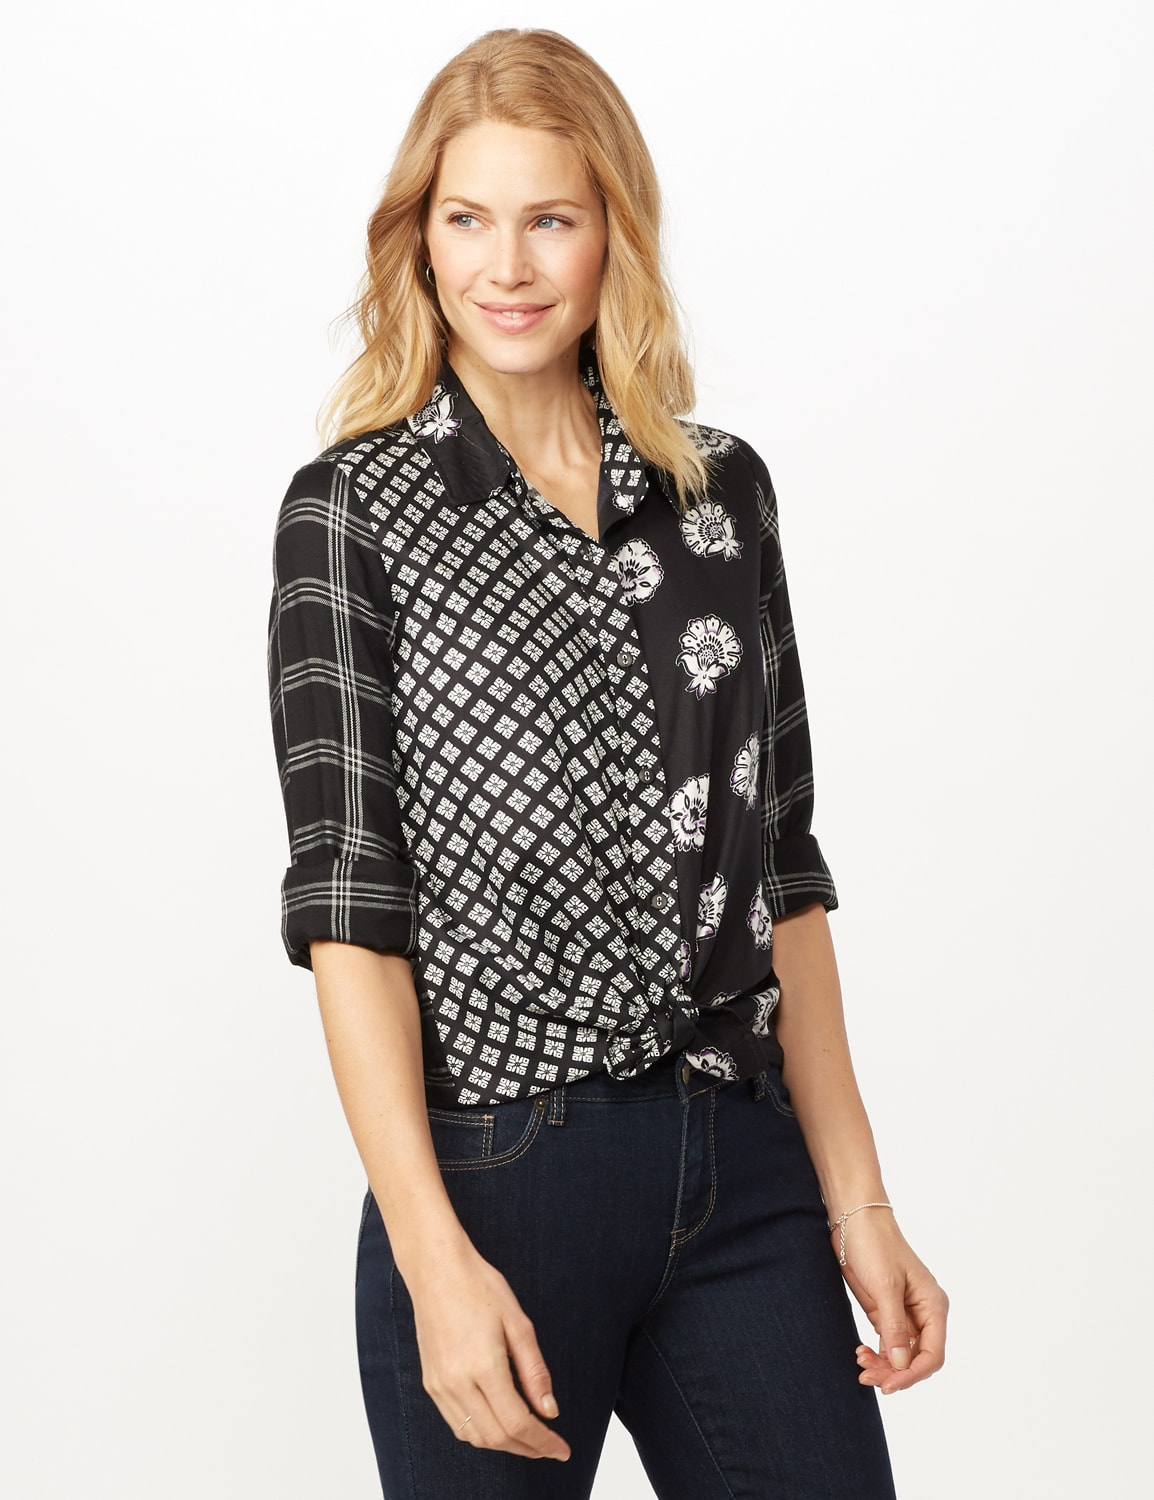 Long Sleeve Mixed Media Print Woven Top - Black/grey - Front